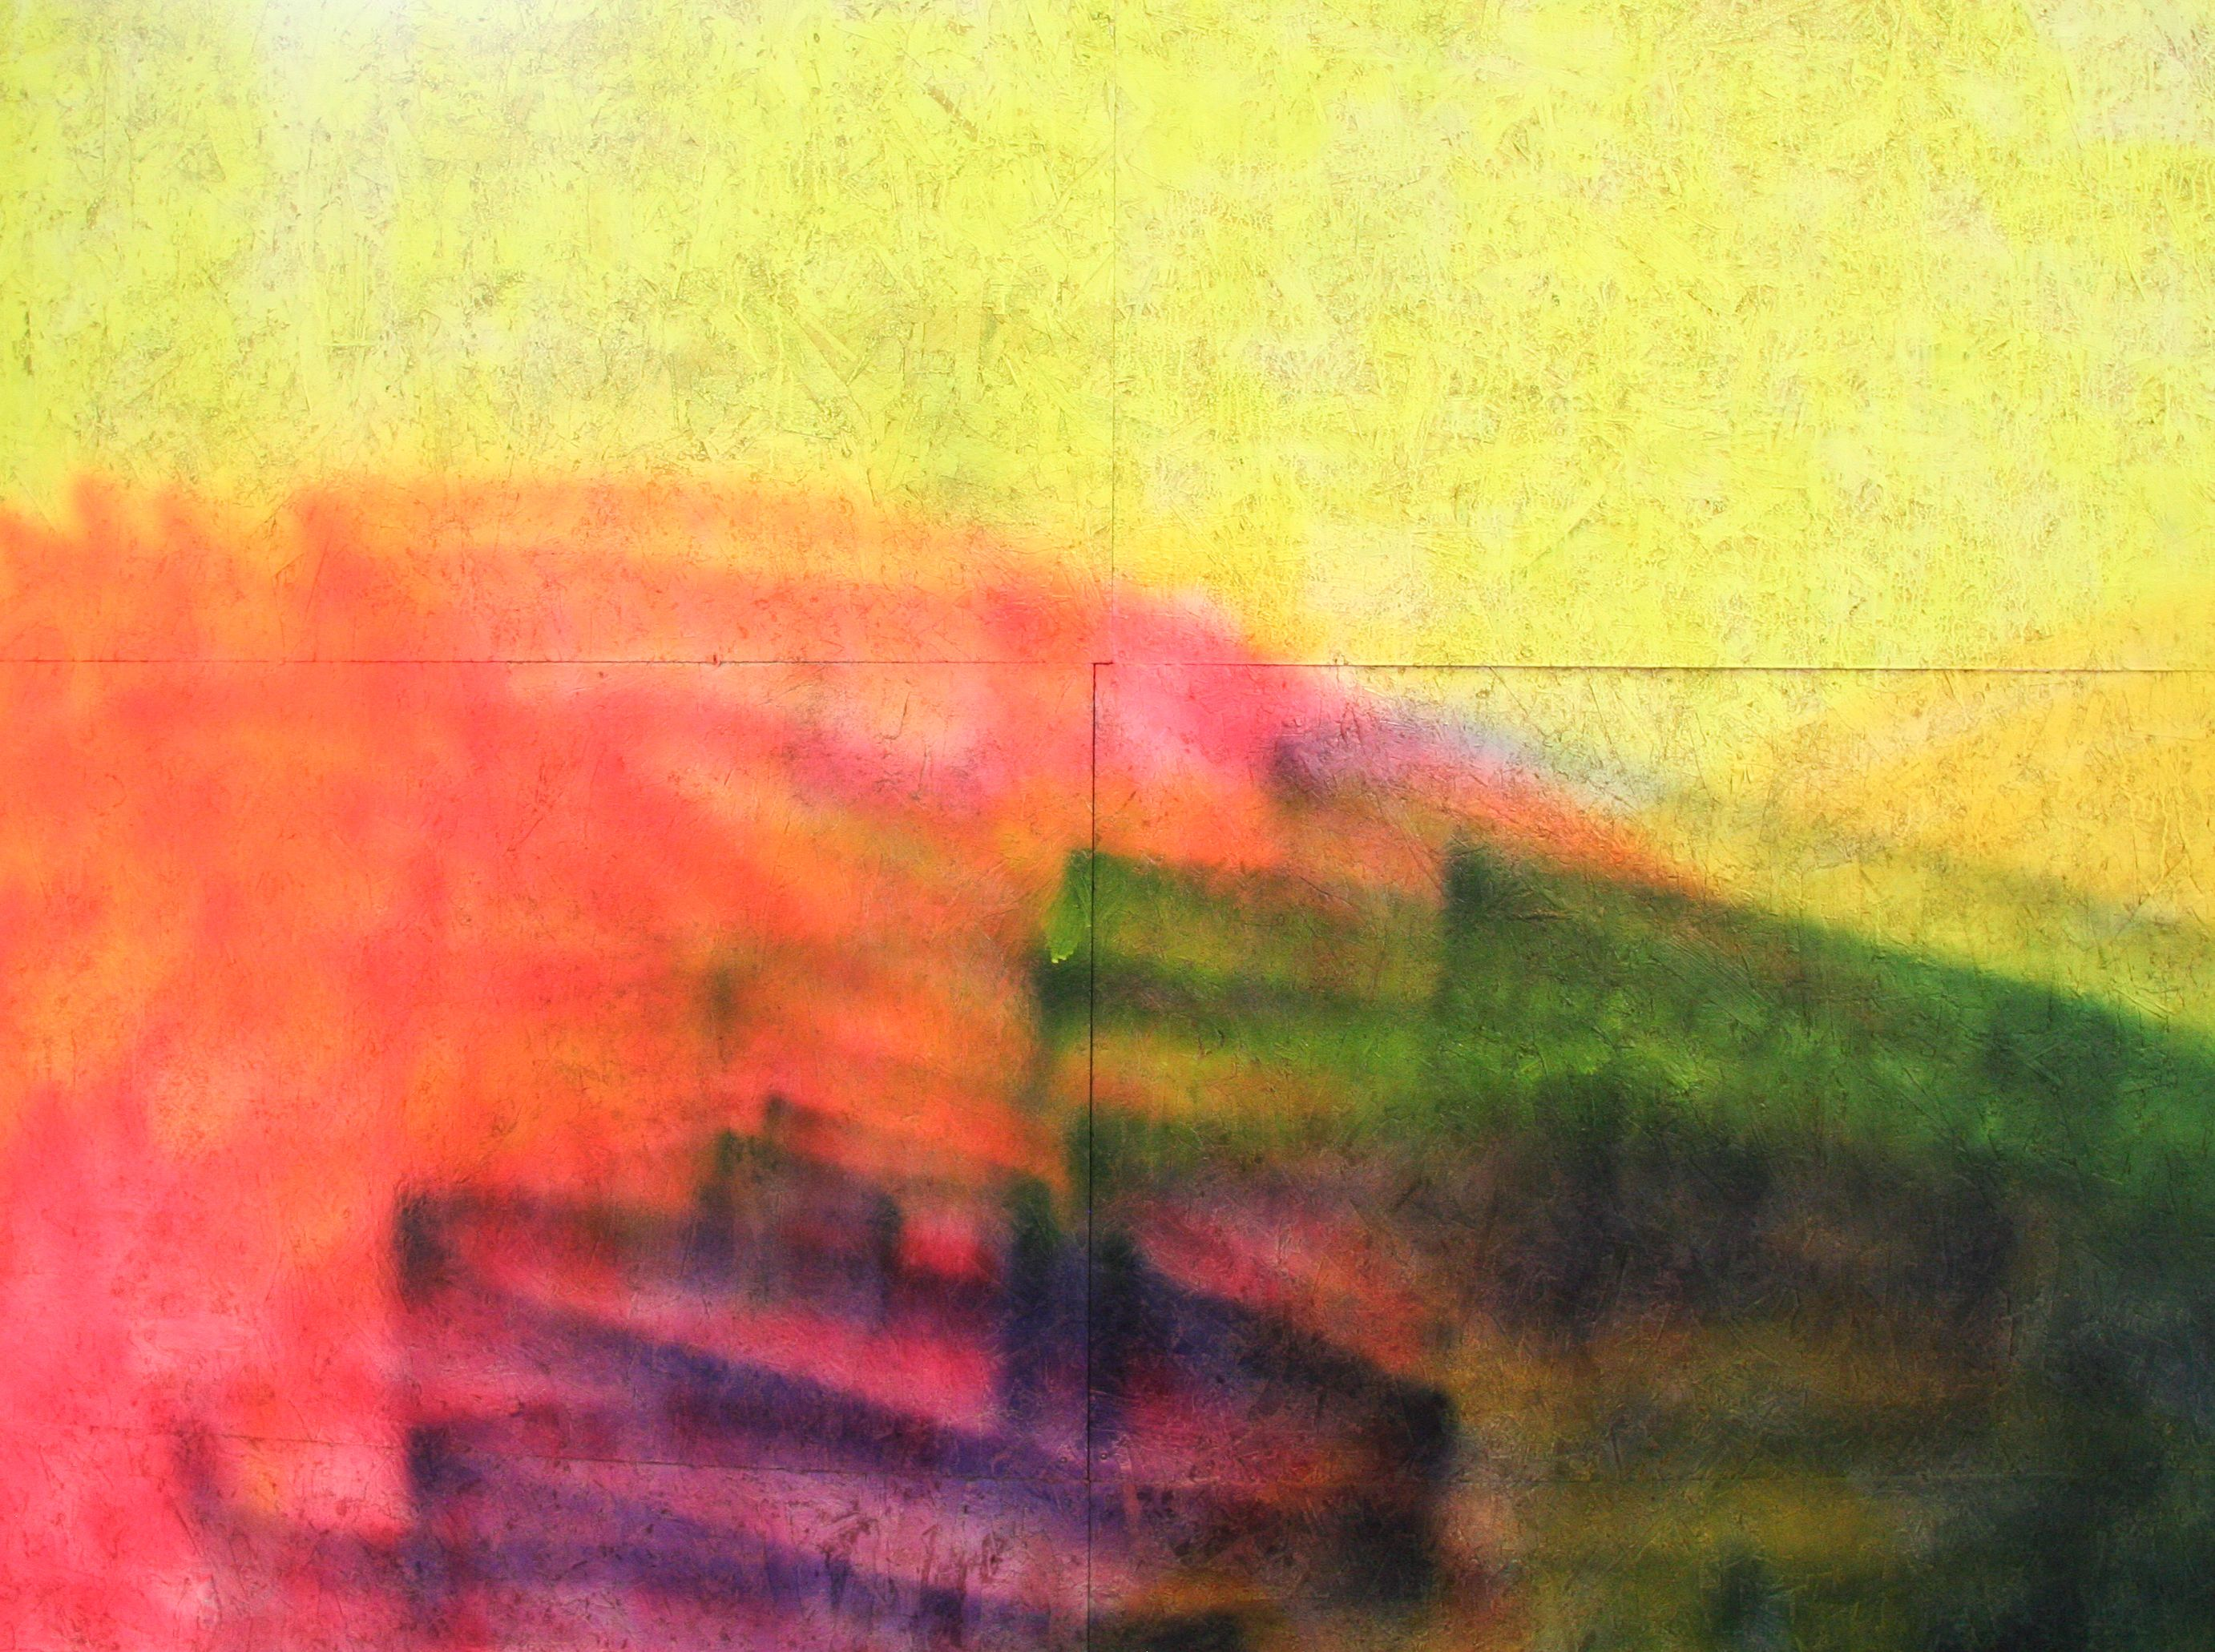 abstract image painted with flourescent yellow, pink, purple and green